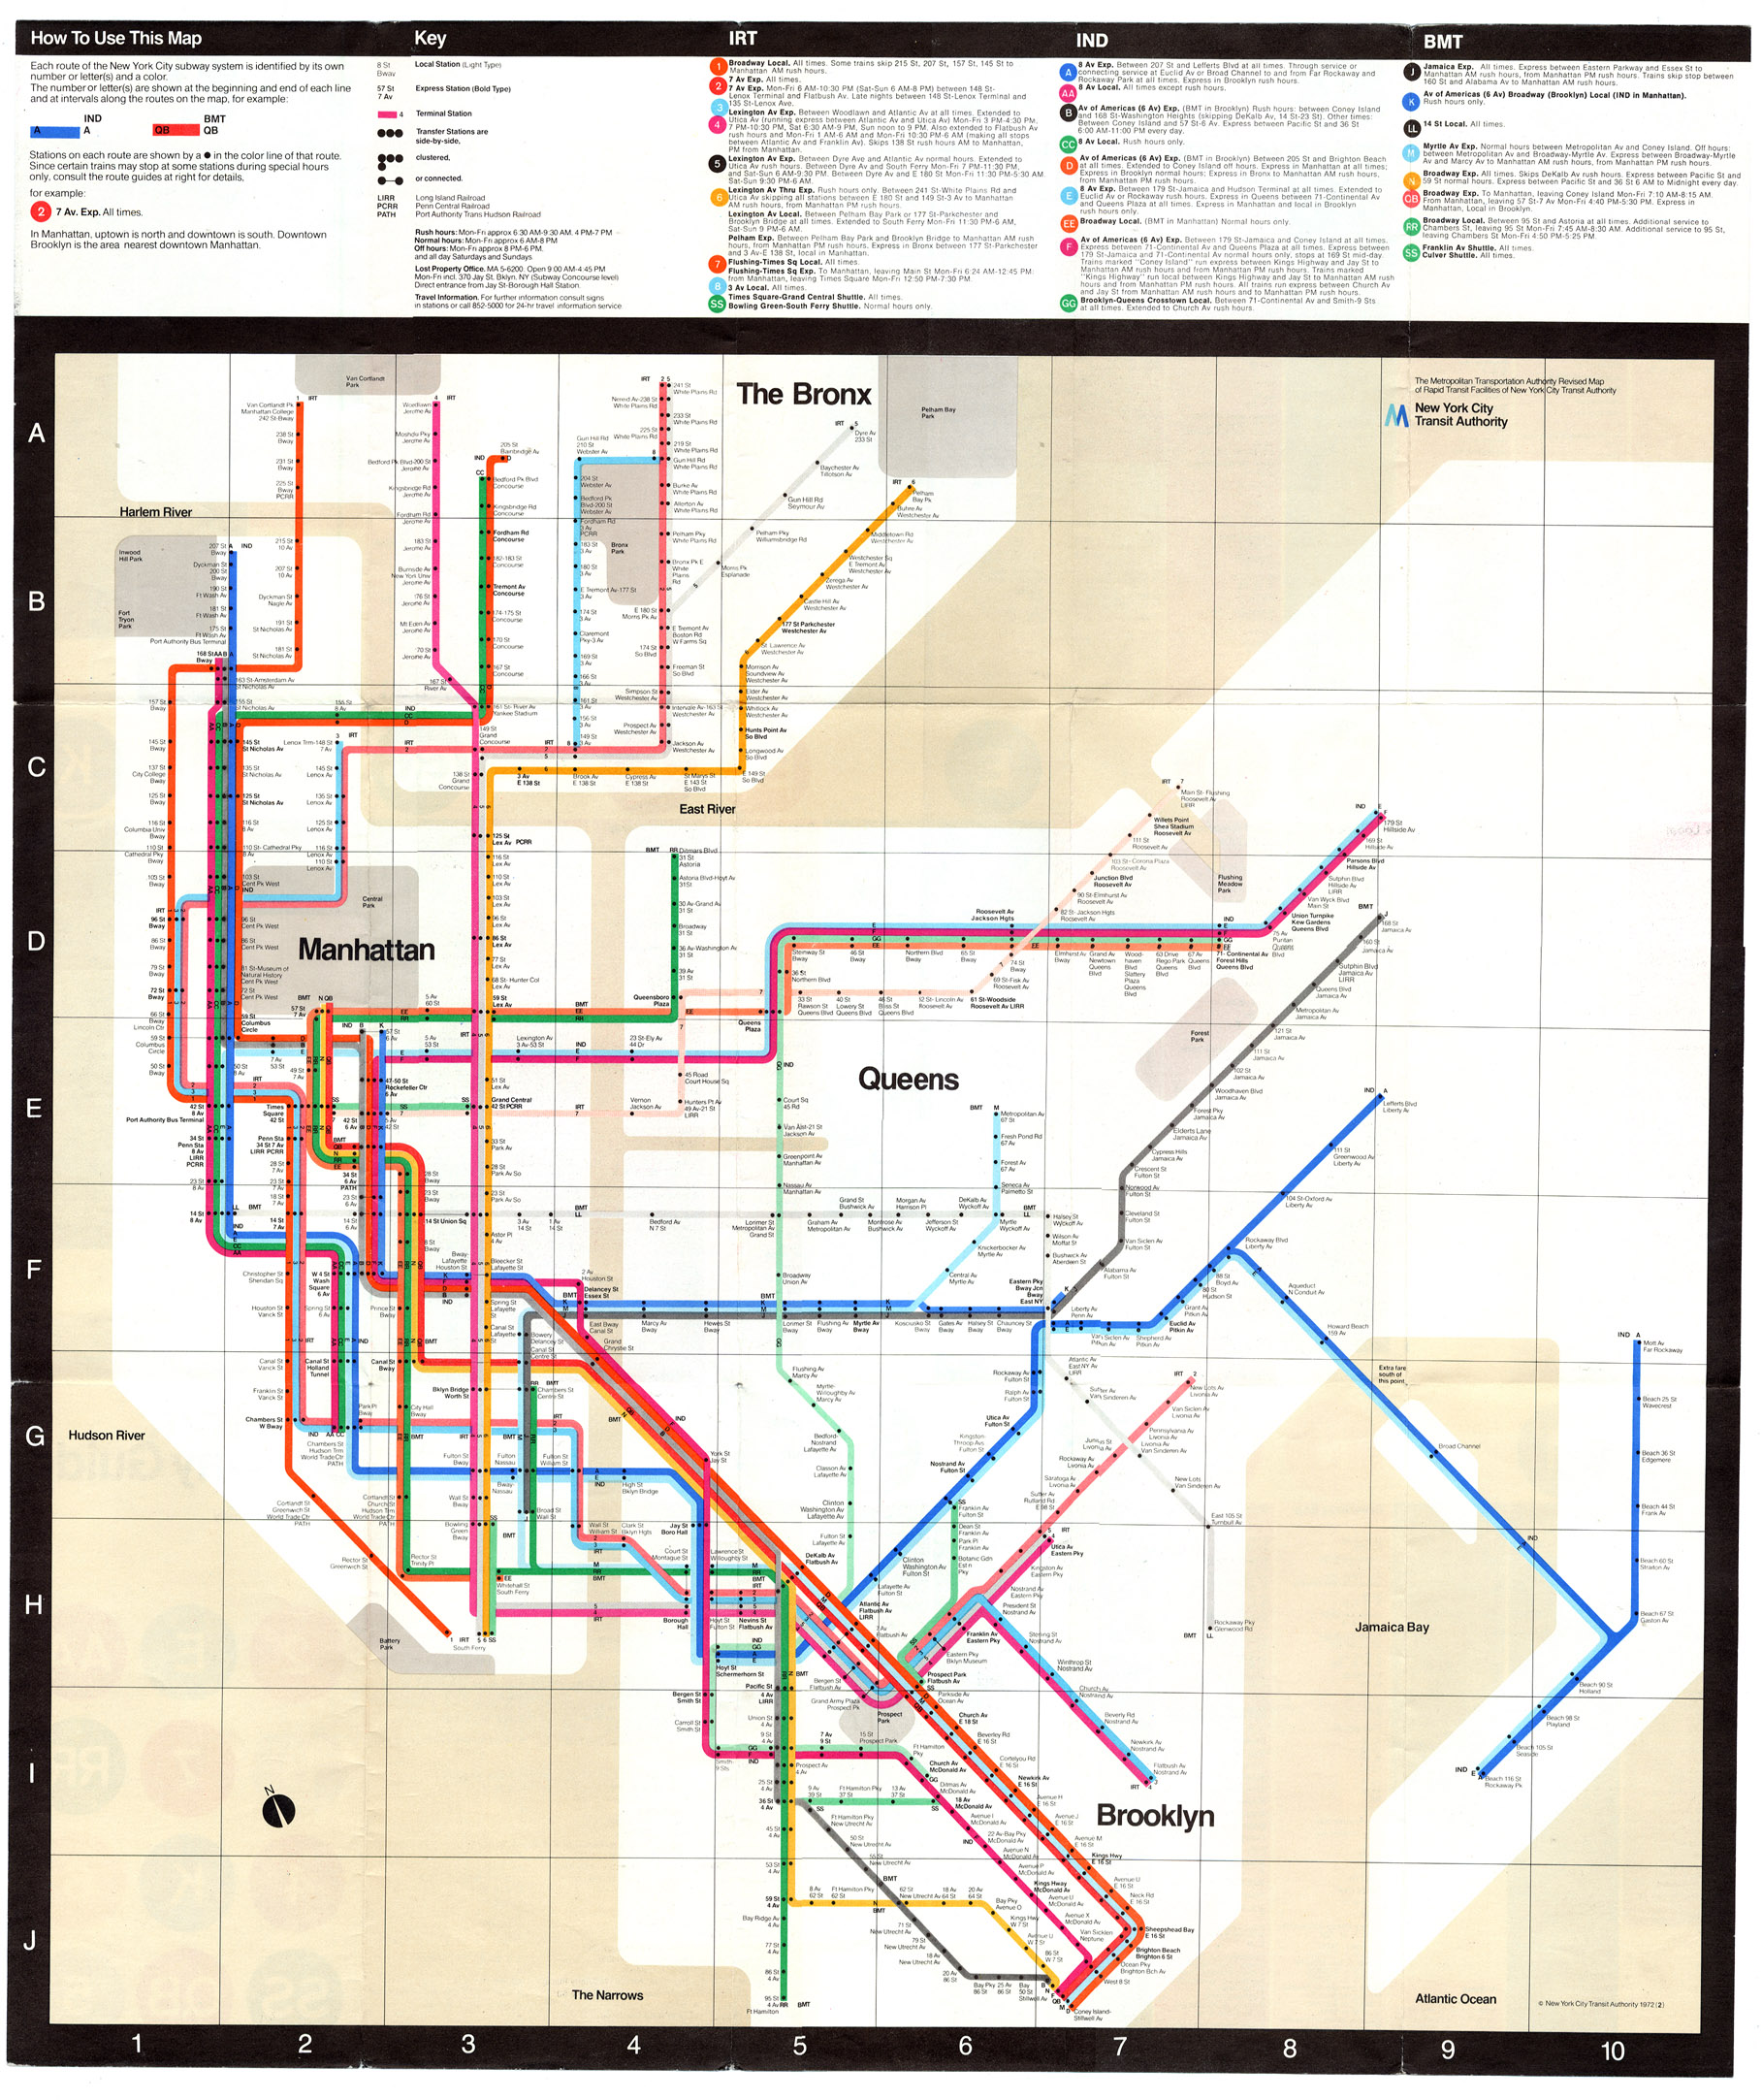 Subway Map For New York City.Designing The New York City Subway Map Urban Omnibus